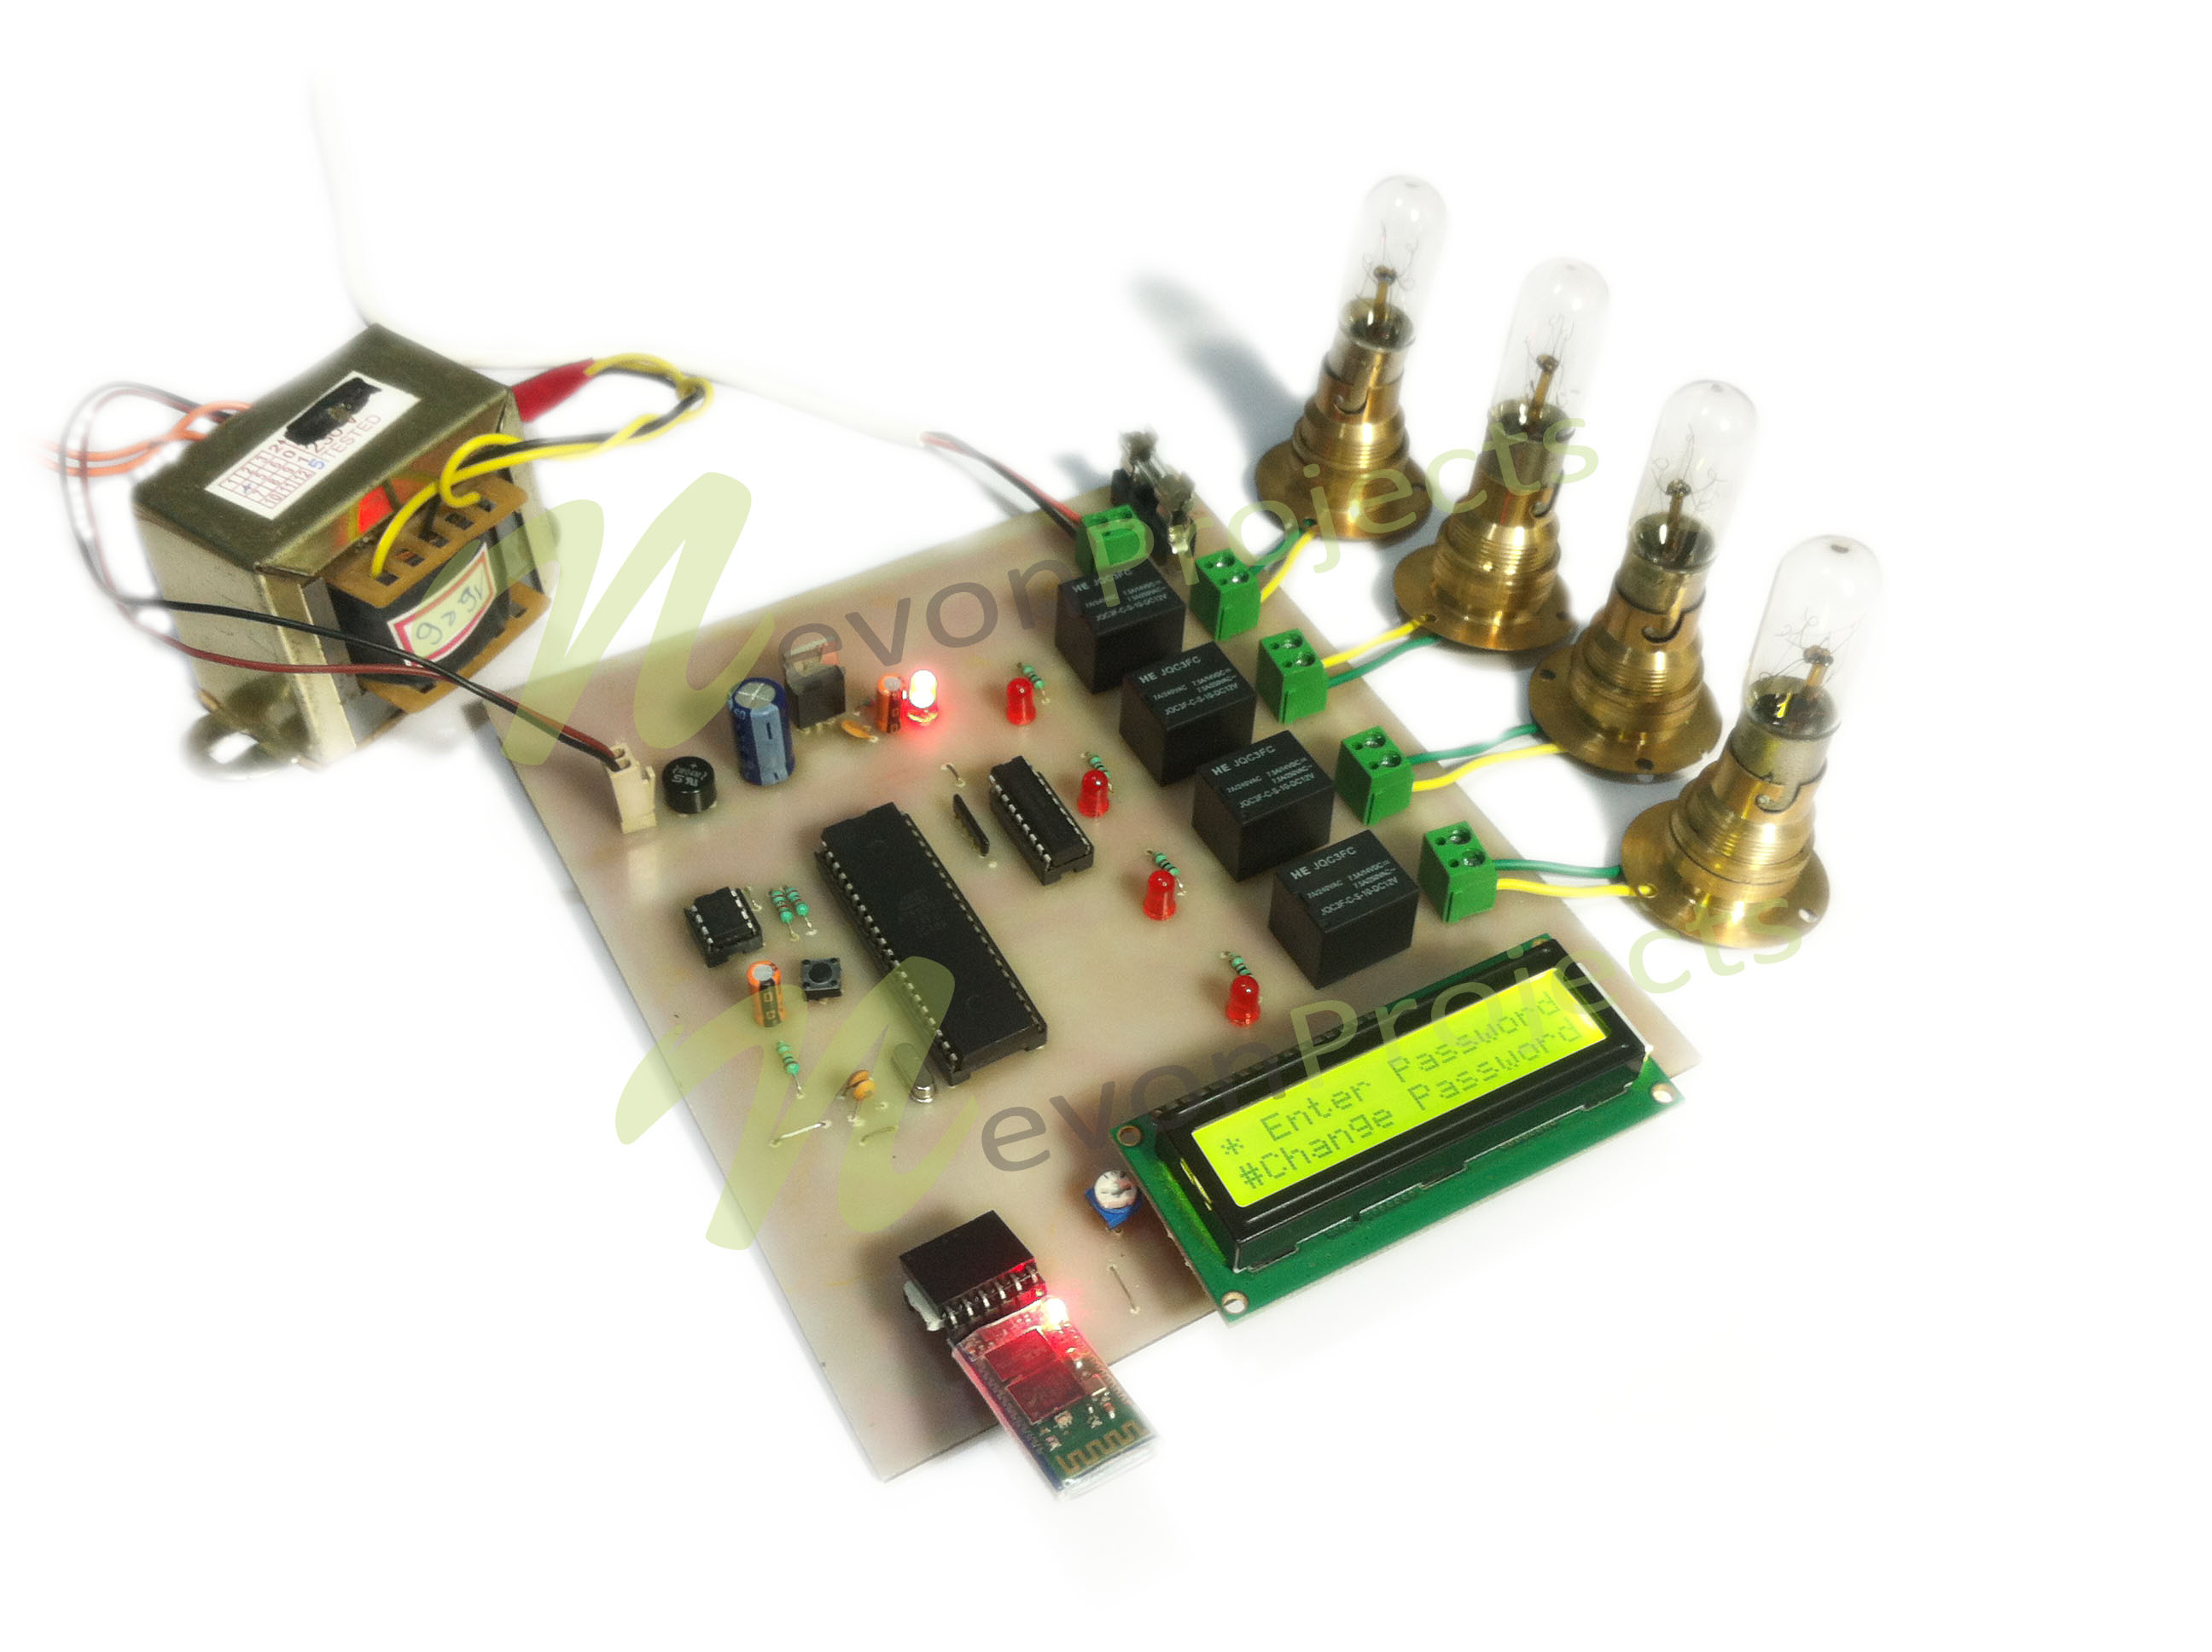 Android Circuit Breaker Project Bluetoothcircuit Based On